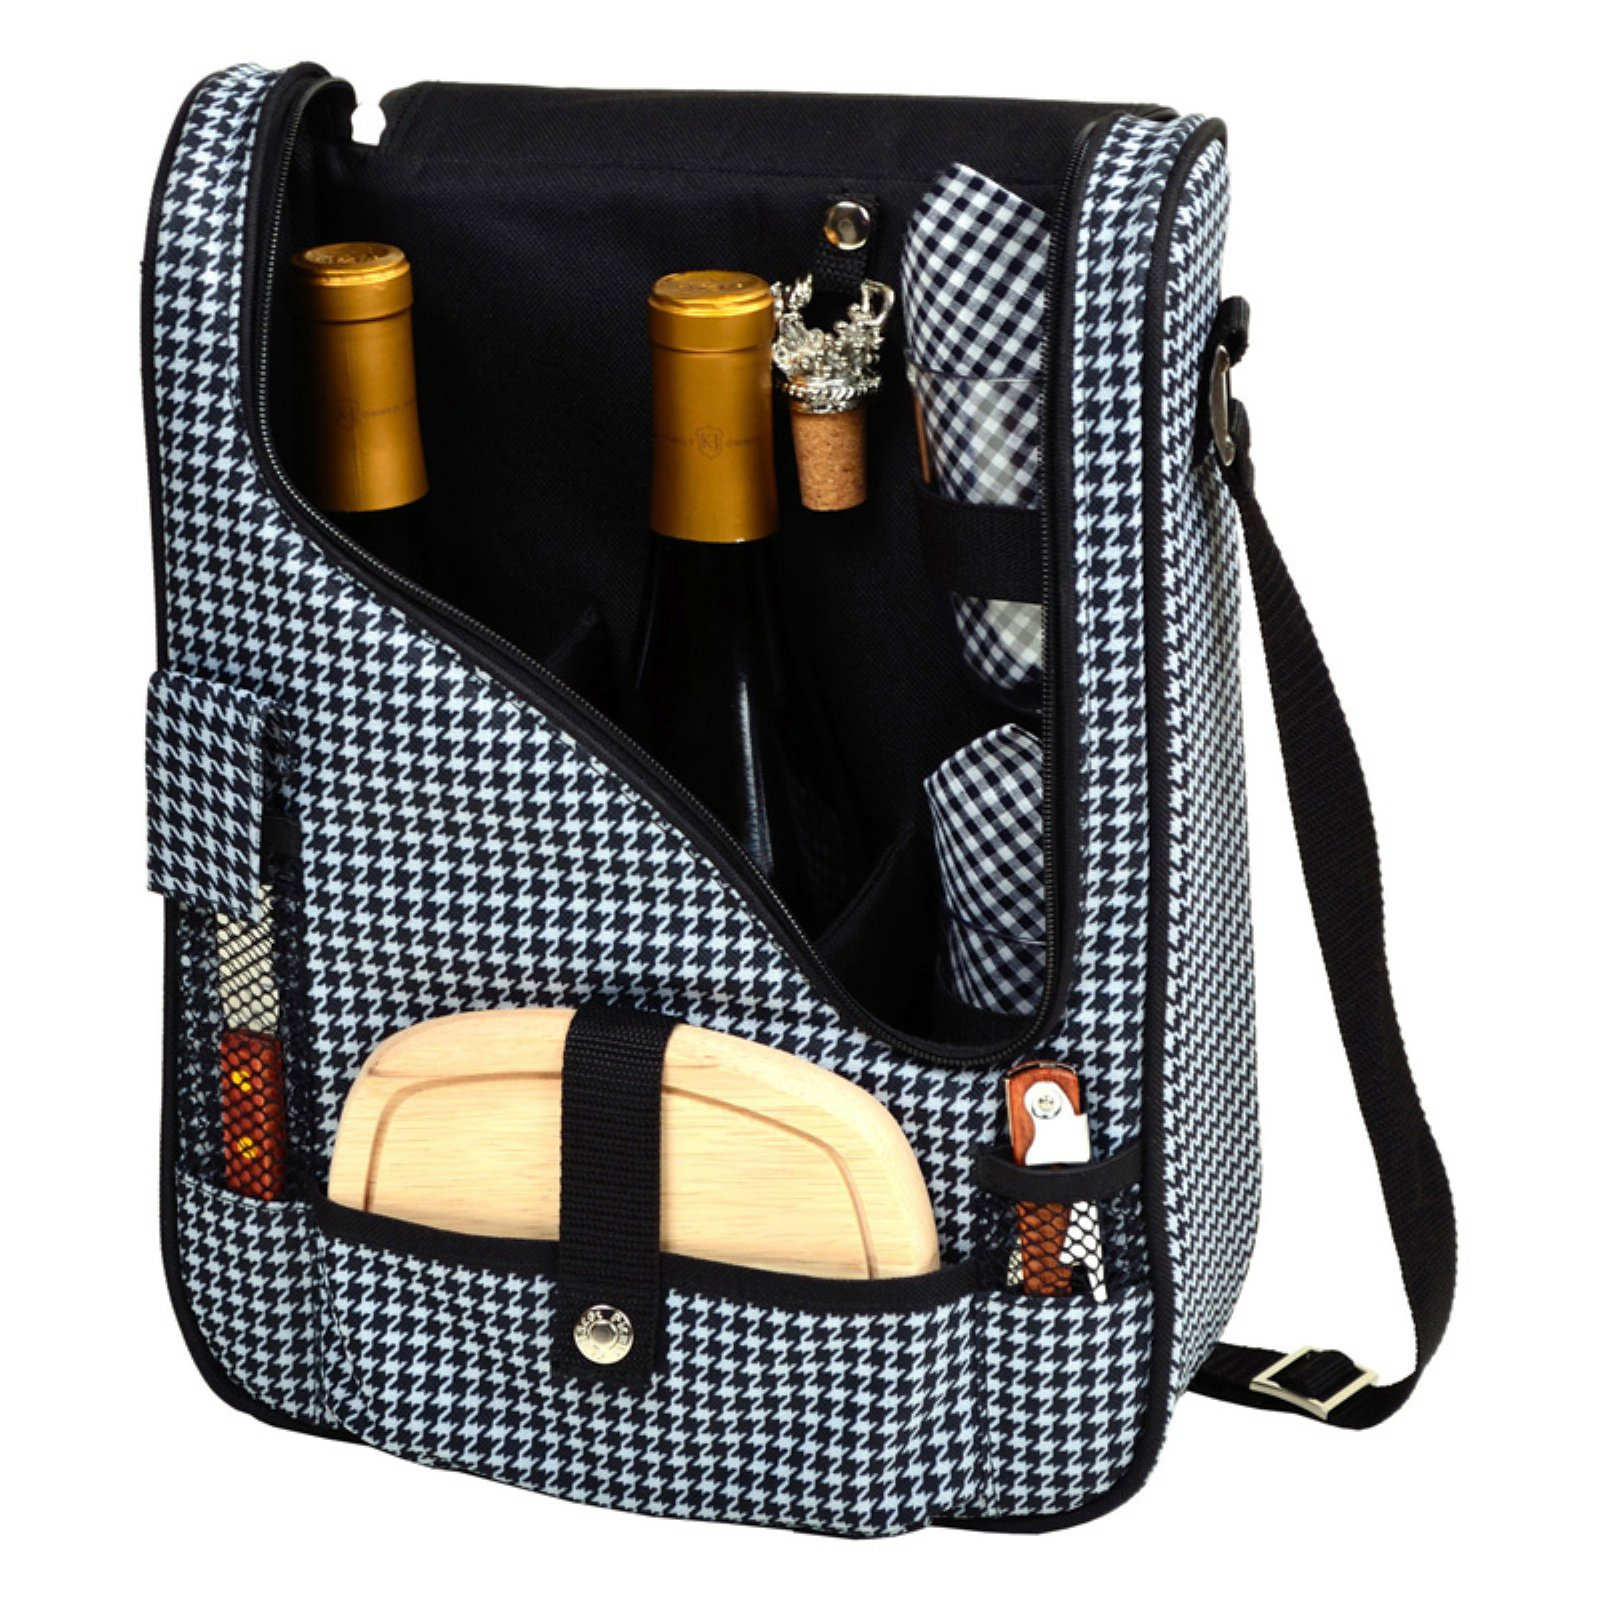 Picnic At Ascot Pinot Wine and Cheese Picnic Cooler for 2 - Houndstooth